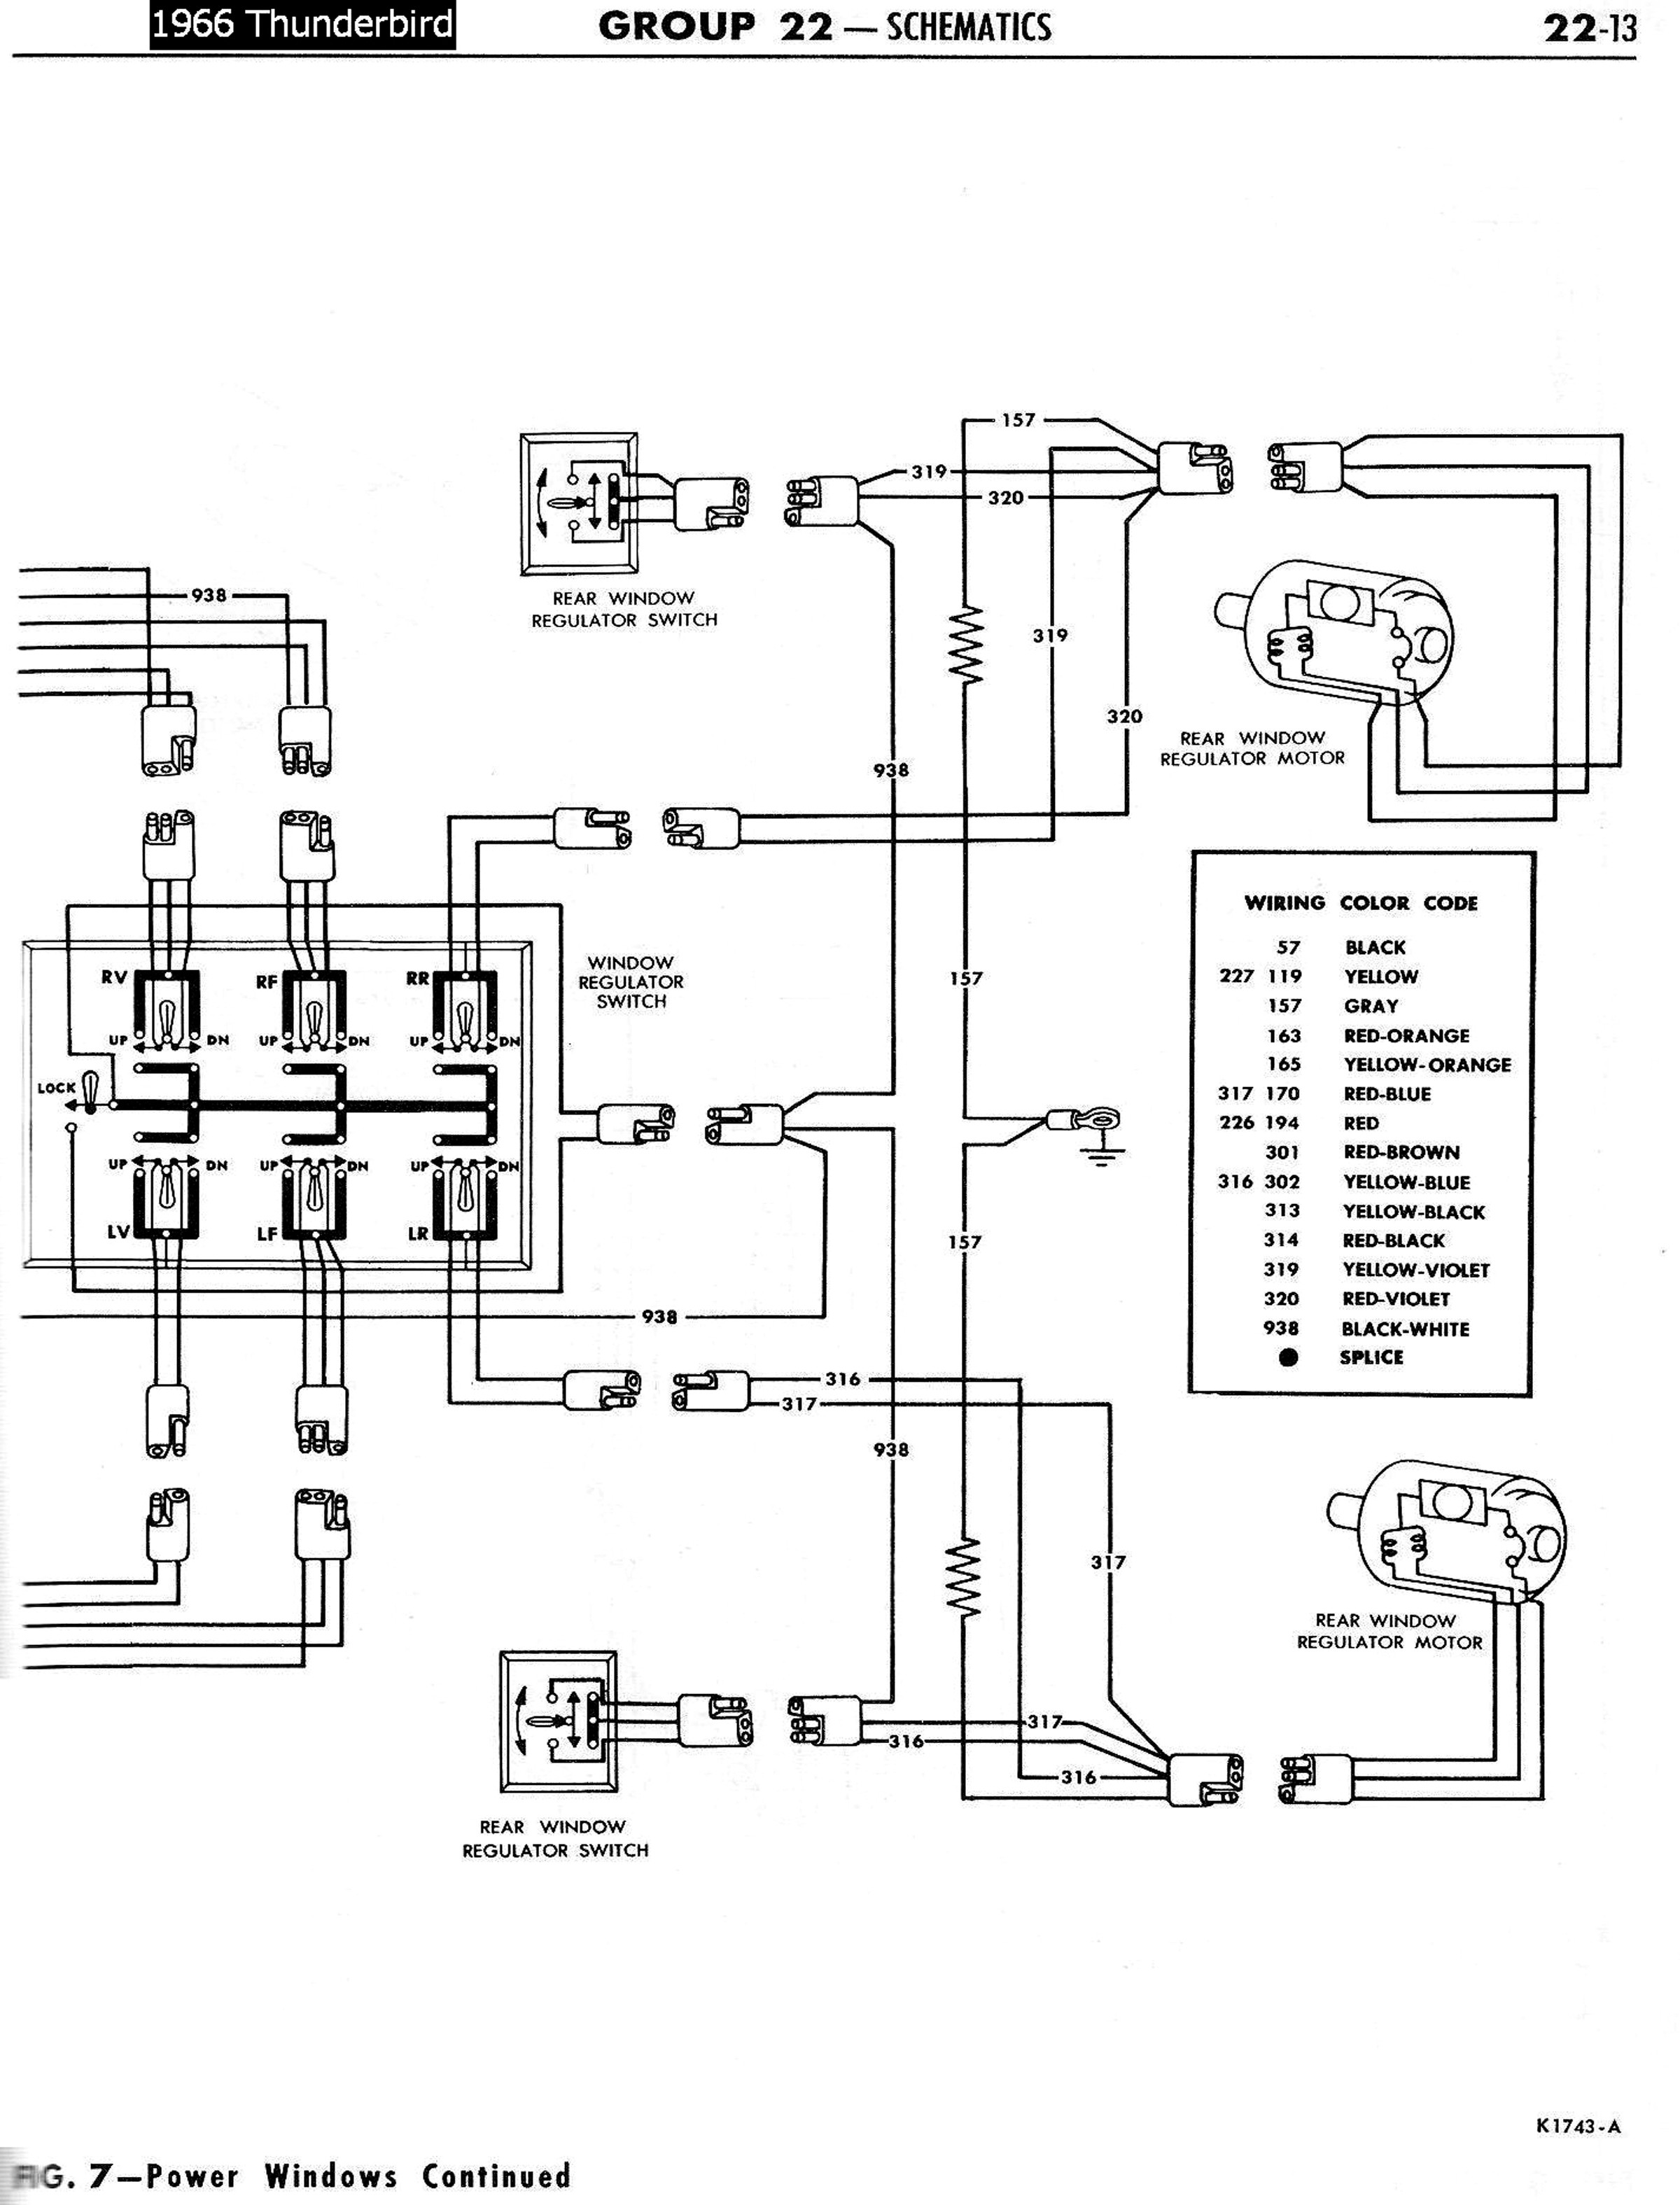 ke turn signal wiring diagram 1955 thunderbird turn signal wiring diagram